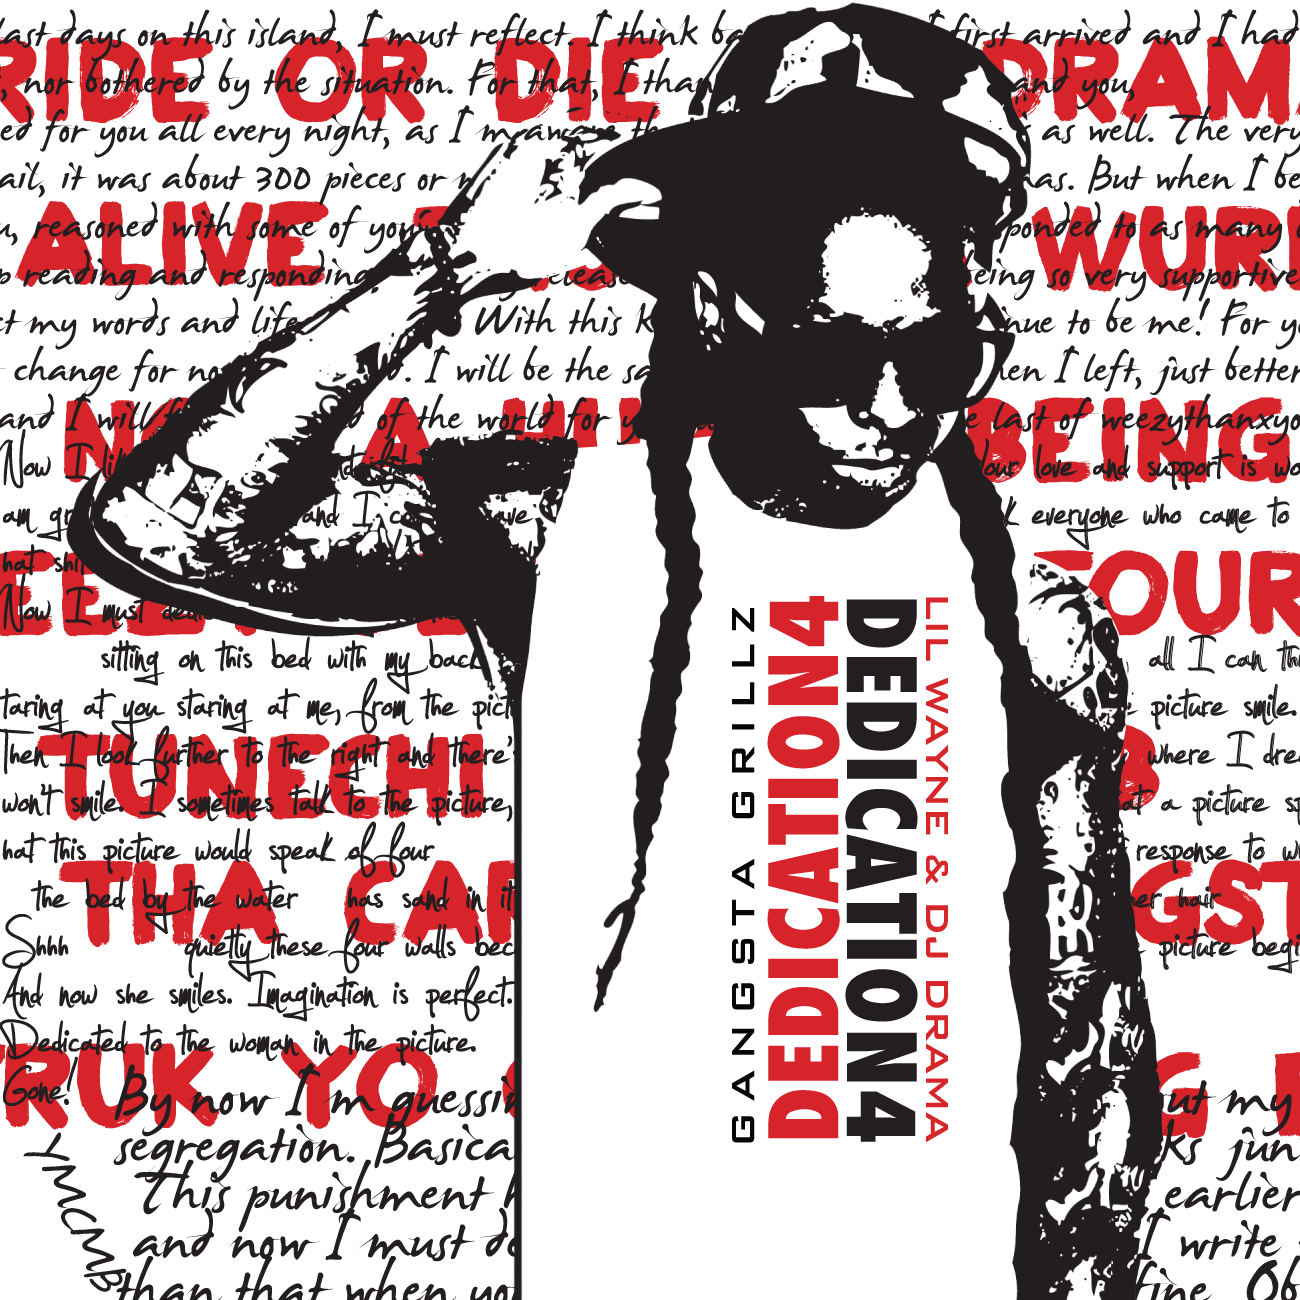 Dedication 4 Discussion Thread - Page 718